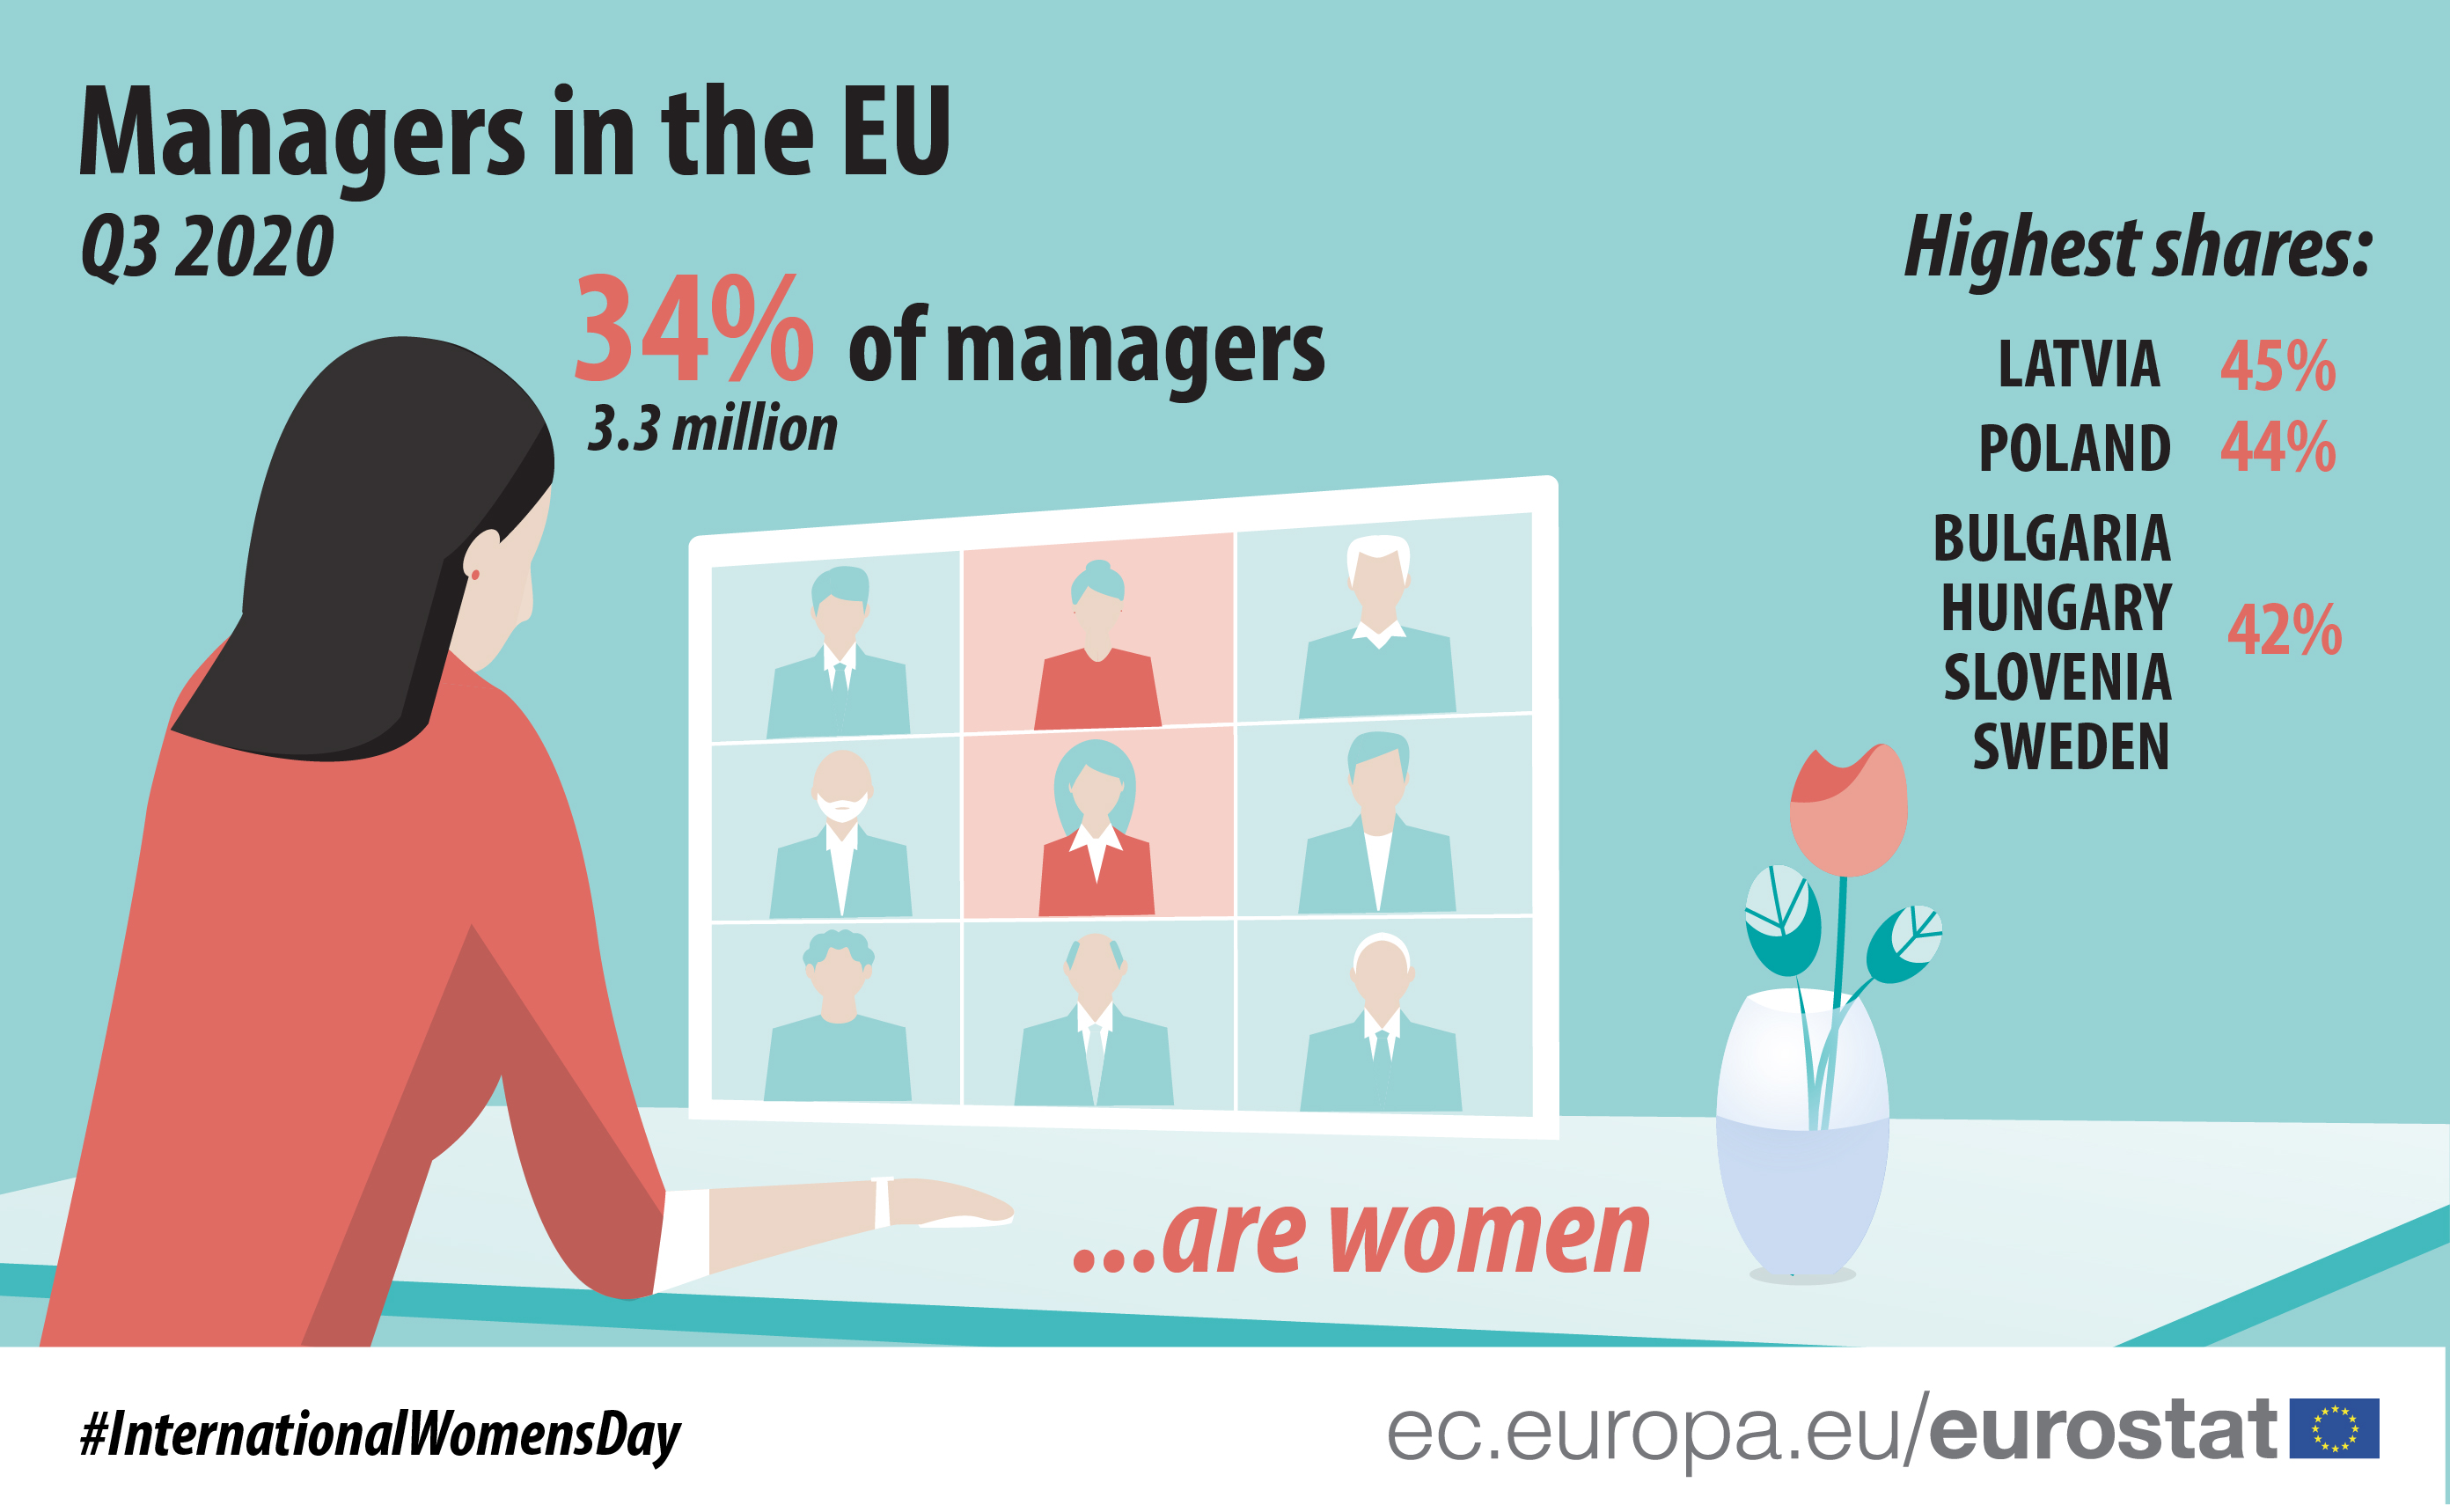 Managers in the EU, Q3 2020